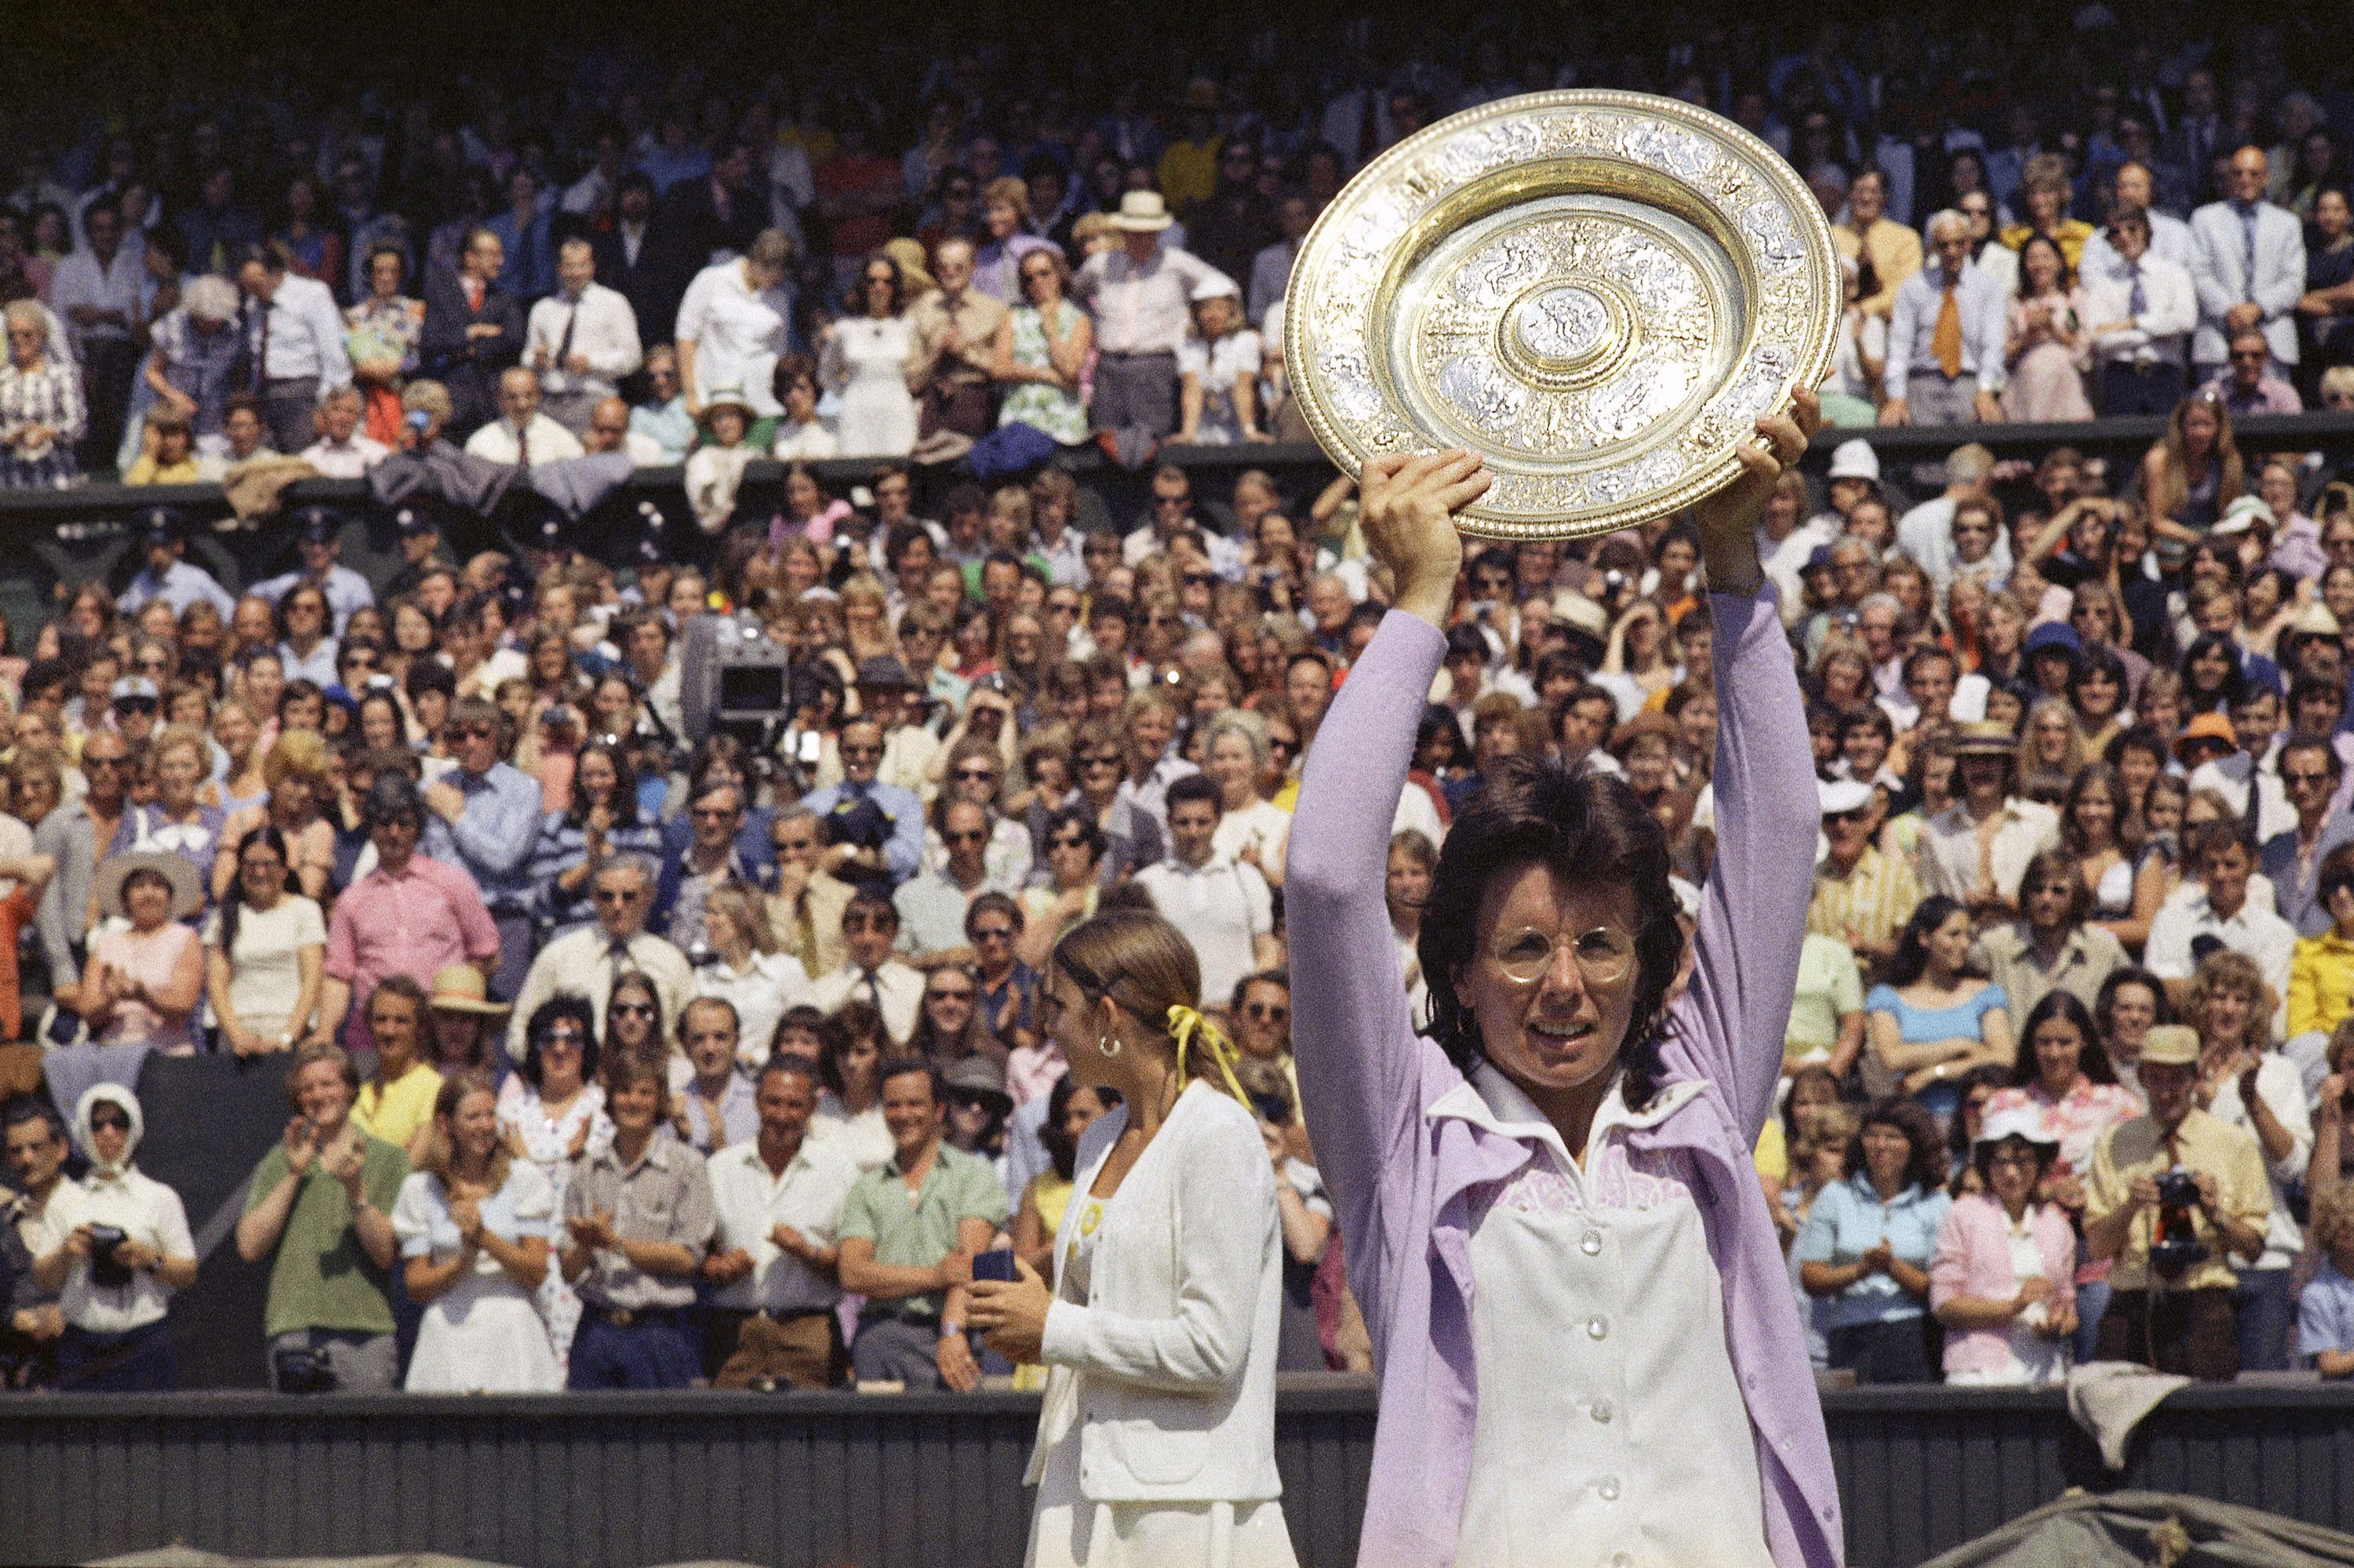 FILE - In this July 7, 1973, file photo, Billie Jean King holds up the championship trophy after defeating Chris Evert in the Wimbledon women's singles final in London. This was King's fifth time winning Wimbledon. (AP Photo/File)